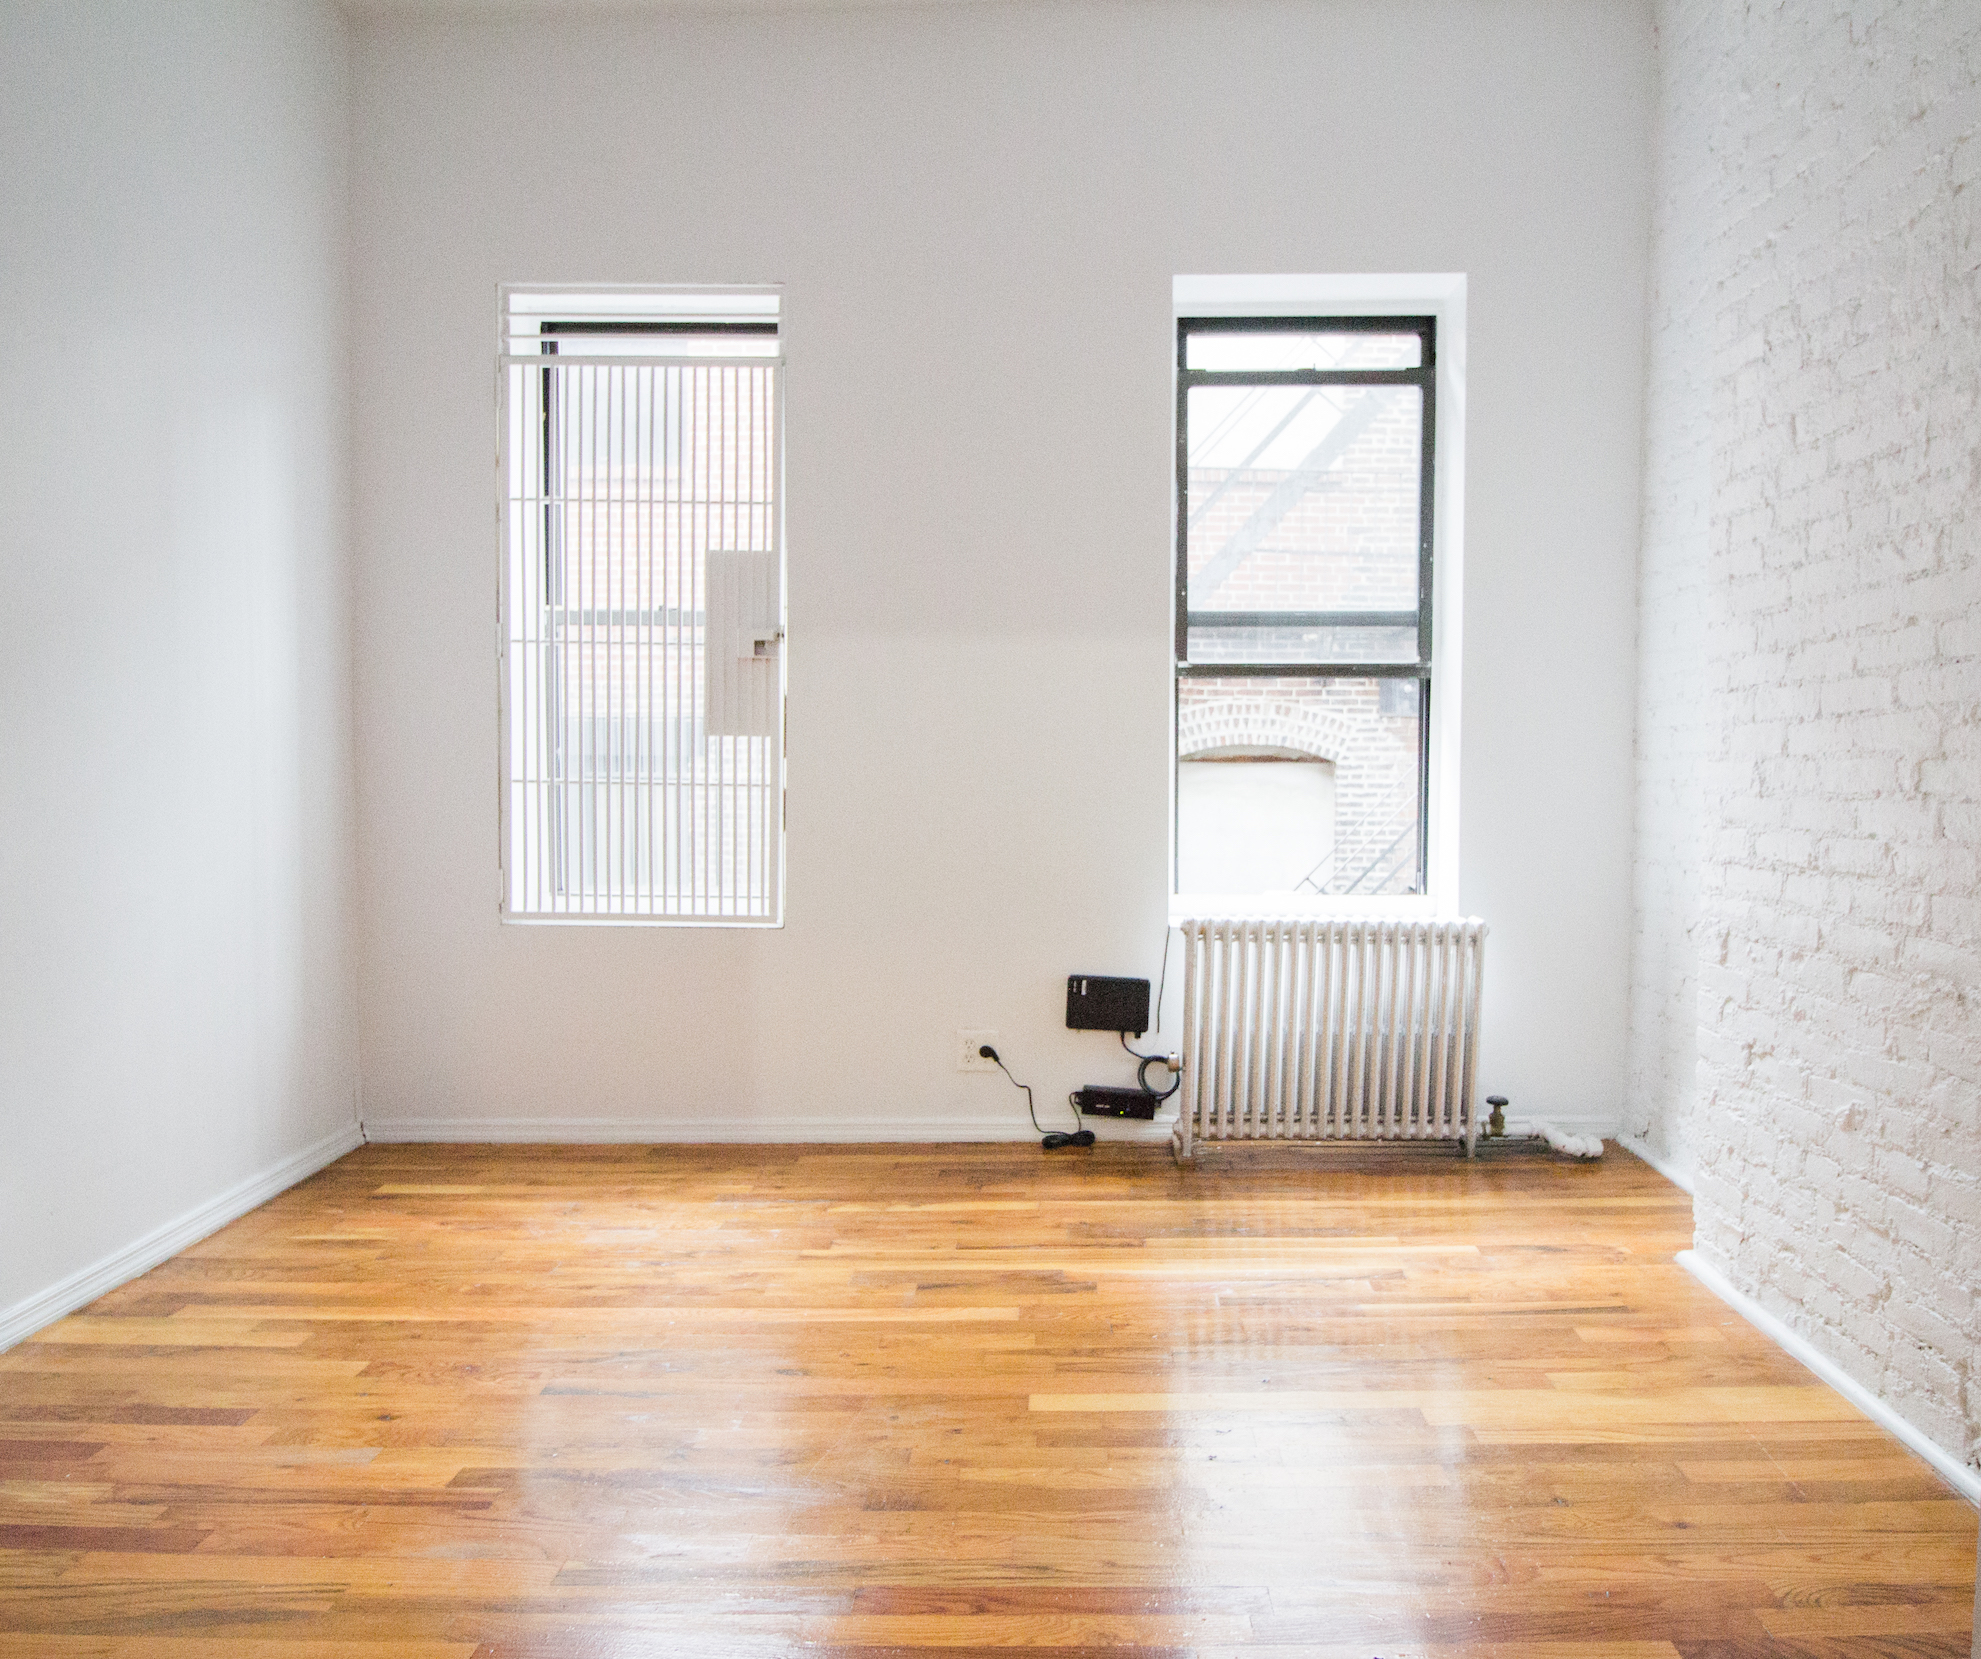 213 E 10 Street #19 - *Spacious & Bright 1 Bed in East Village *Charming tree line St*True 1 Bedroom offering great space, high ceilings, light, charming exposed brick and hardwood floors throughout. Separate kitchen and a quiet bedroom. Located on a tree line street in East Village, steps away from major restaurants, stores, entertainment, parks and several subway lines.Unit is located on the 5th floor of a walk up.Pets are case by caseRent: $2,450 /monthTerms: 12 - 12 MonthsAvailable: January 5th